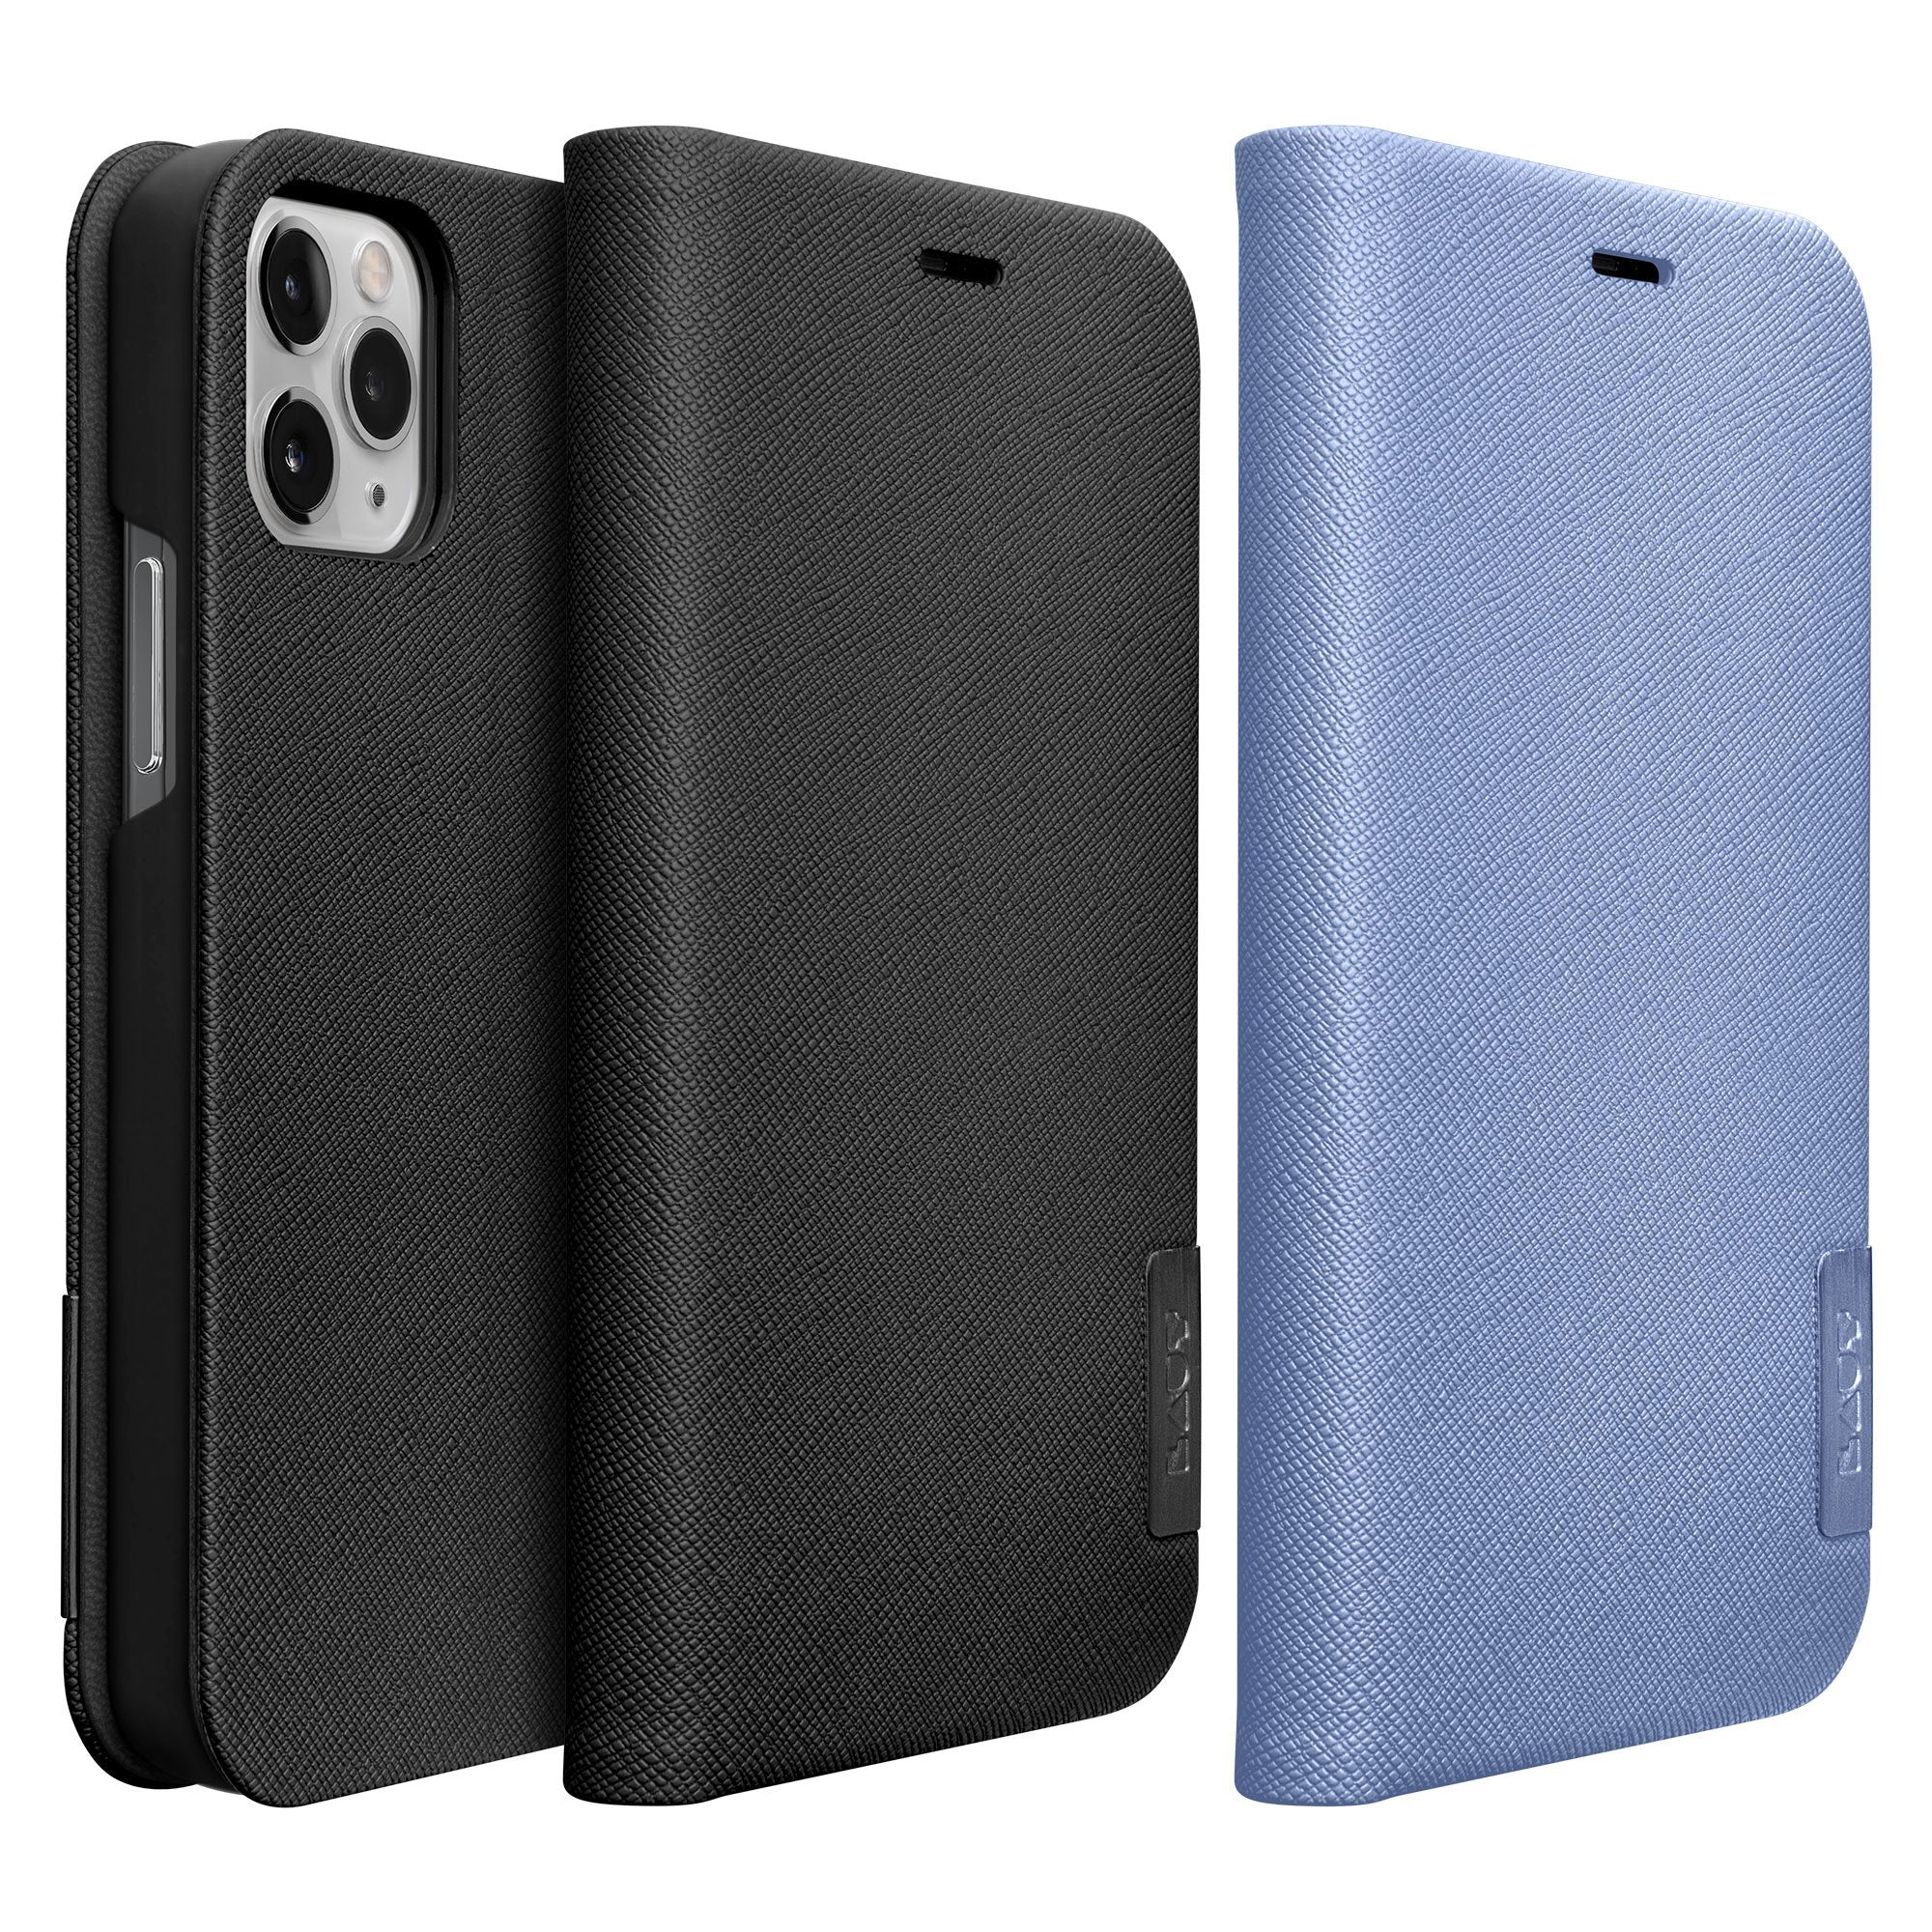 PRESTIGE FOLIO case for iPhone 12 series